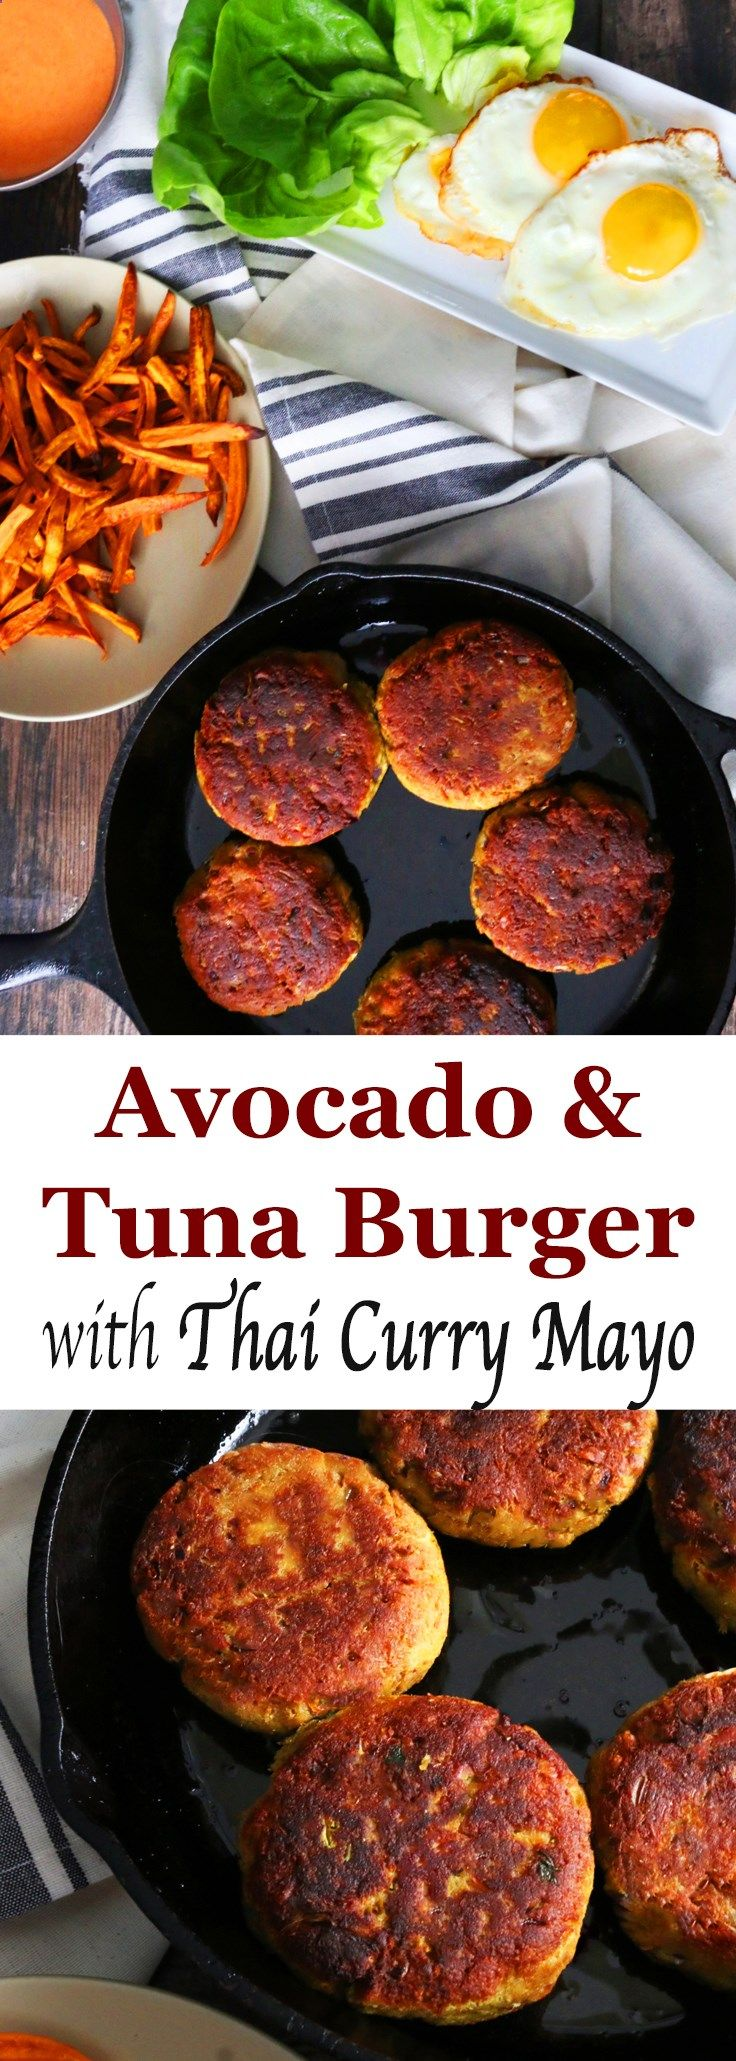 Healthy Avocado and Tuna burger with Thai curry mayo | Thai burger | Tuna burger | avocado burger | healthy burger | Thai mayonnaise | Tuna cake |Avocado Cake |